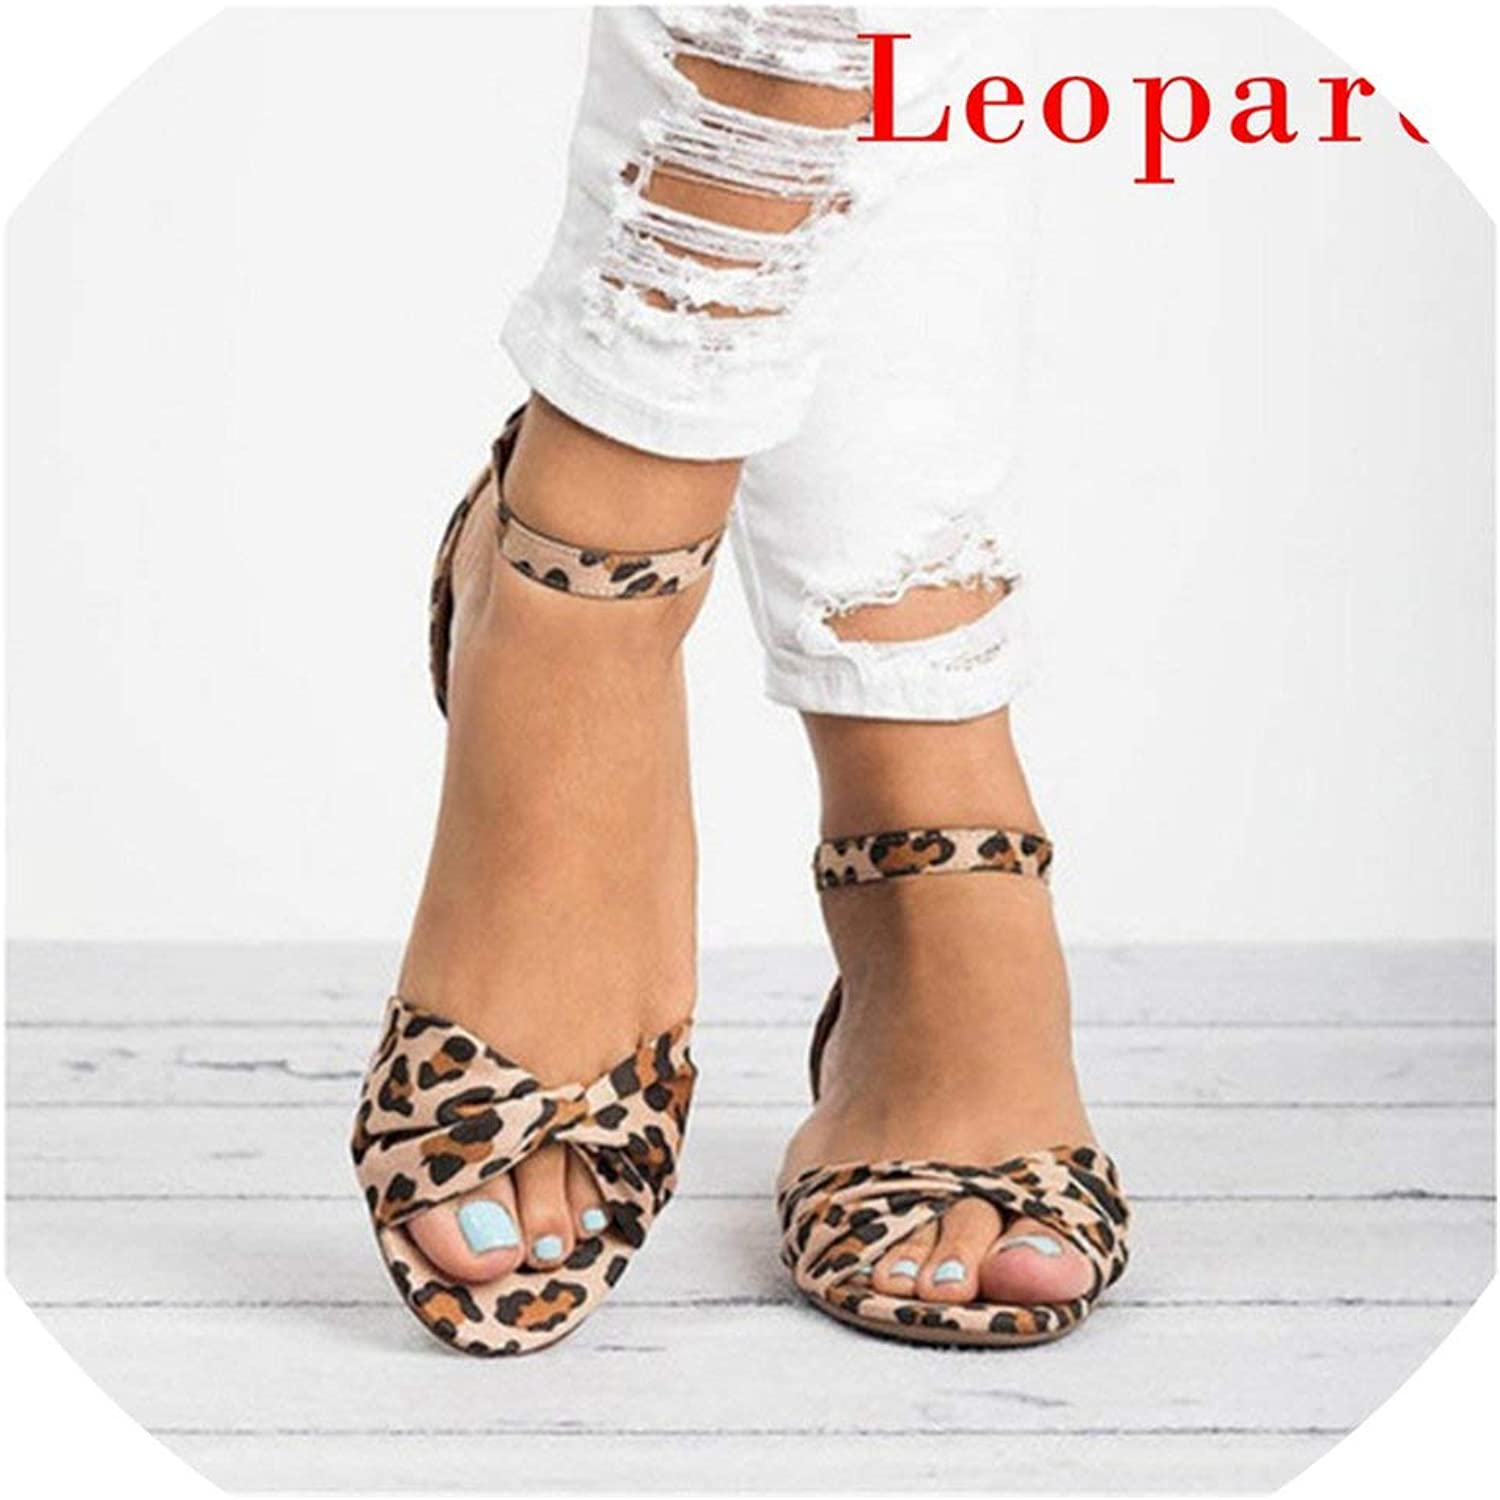 Oeak Leopard Print Flat Heel Women's Sandals Women Summer shoes Sandals Sweet